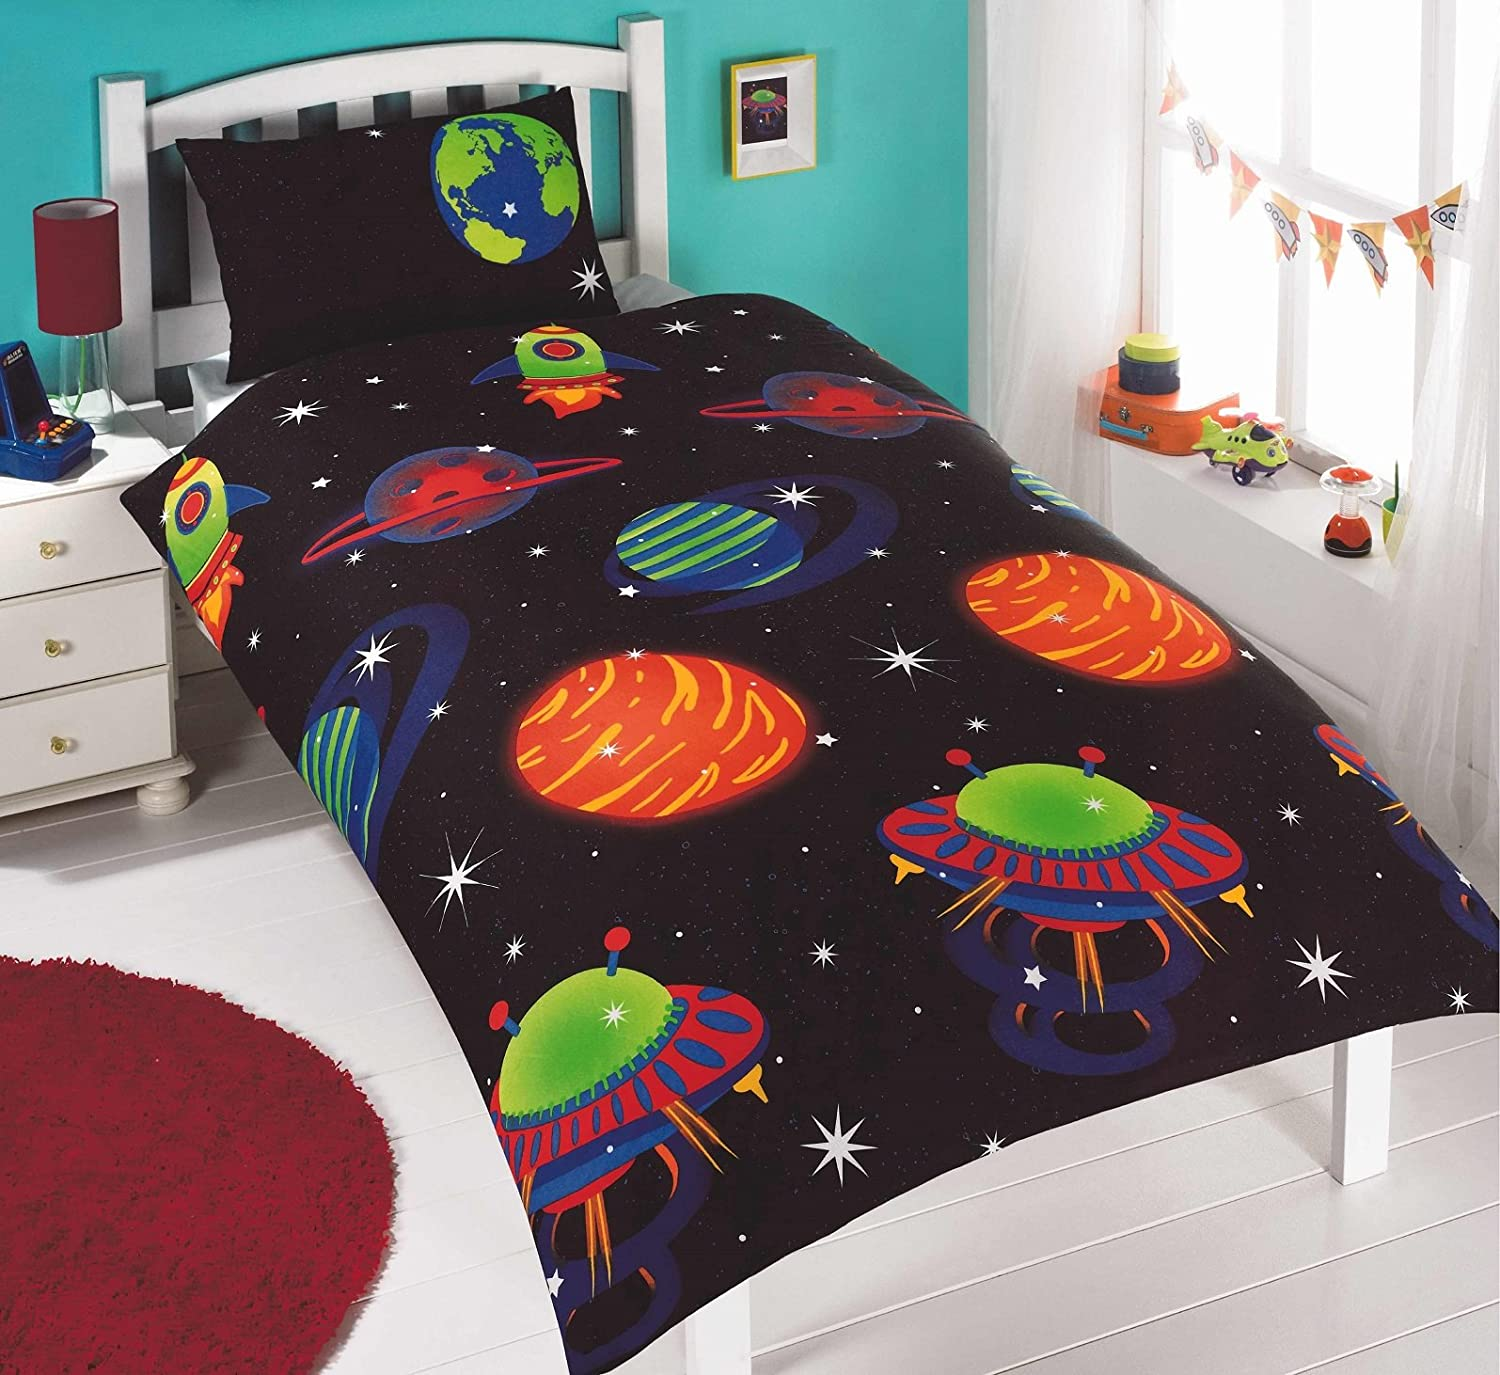 glow in the dark space rocket stars kid duvet quilt cover double